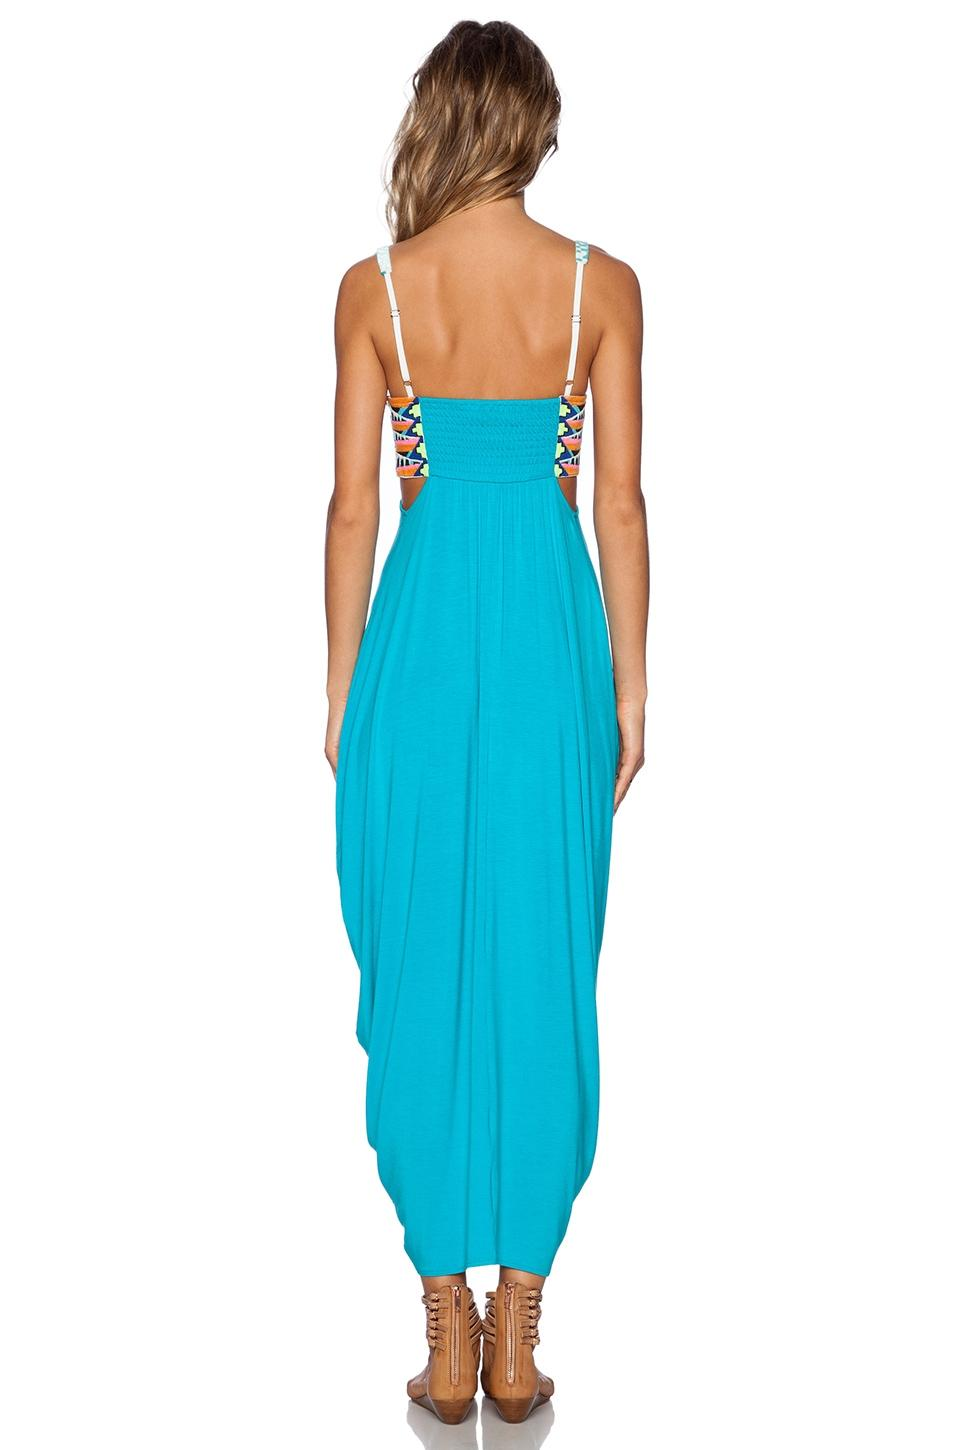 Turquoise Strapless Casual Dress